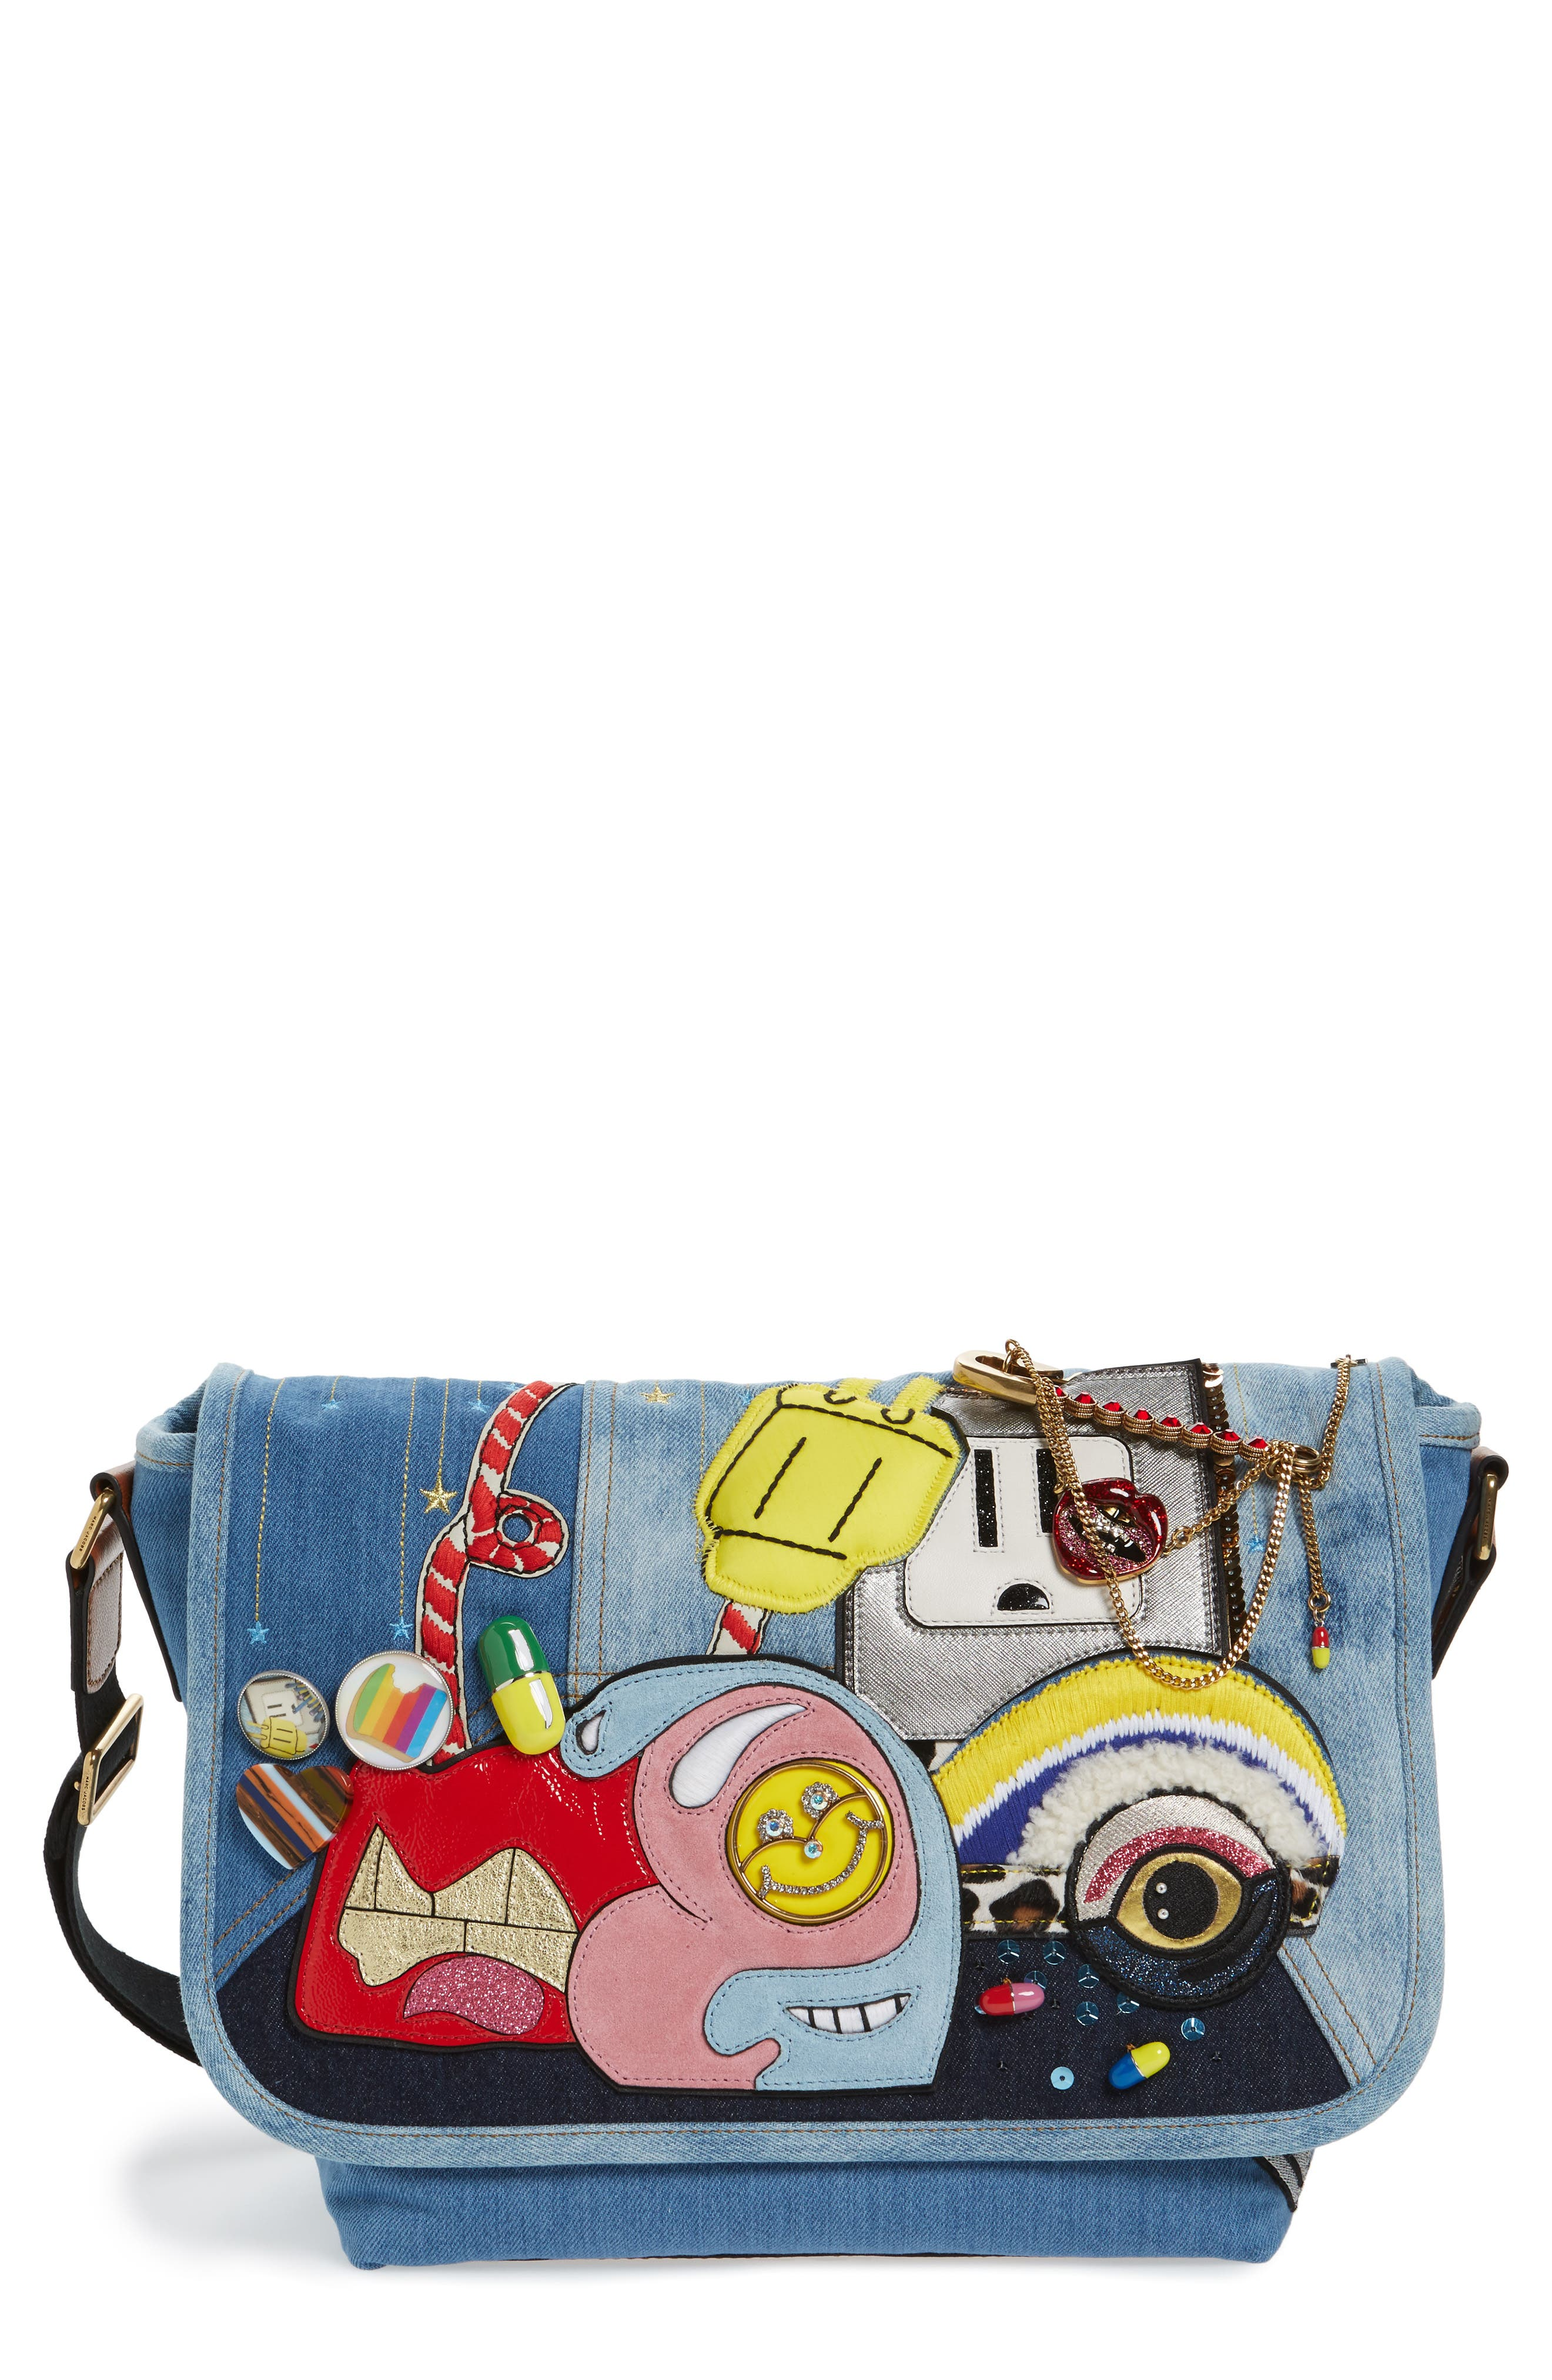 Alternate Image 1 Selected - MARC JACOBS Denim Crossbody Bag